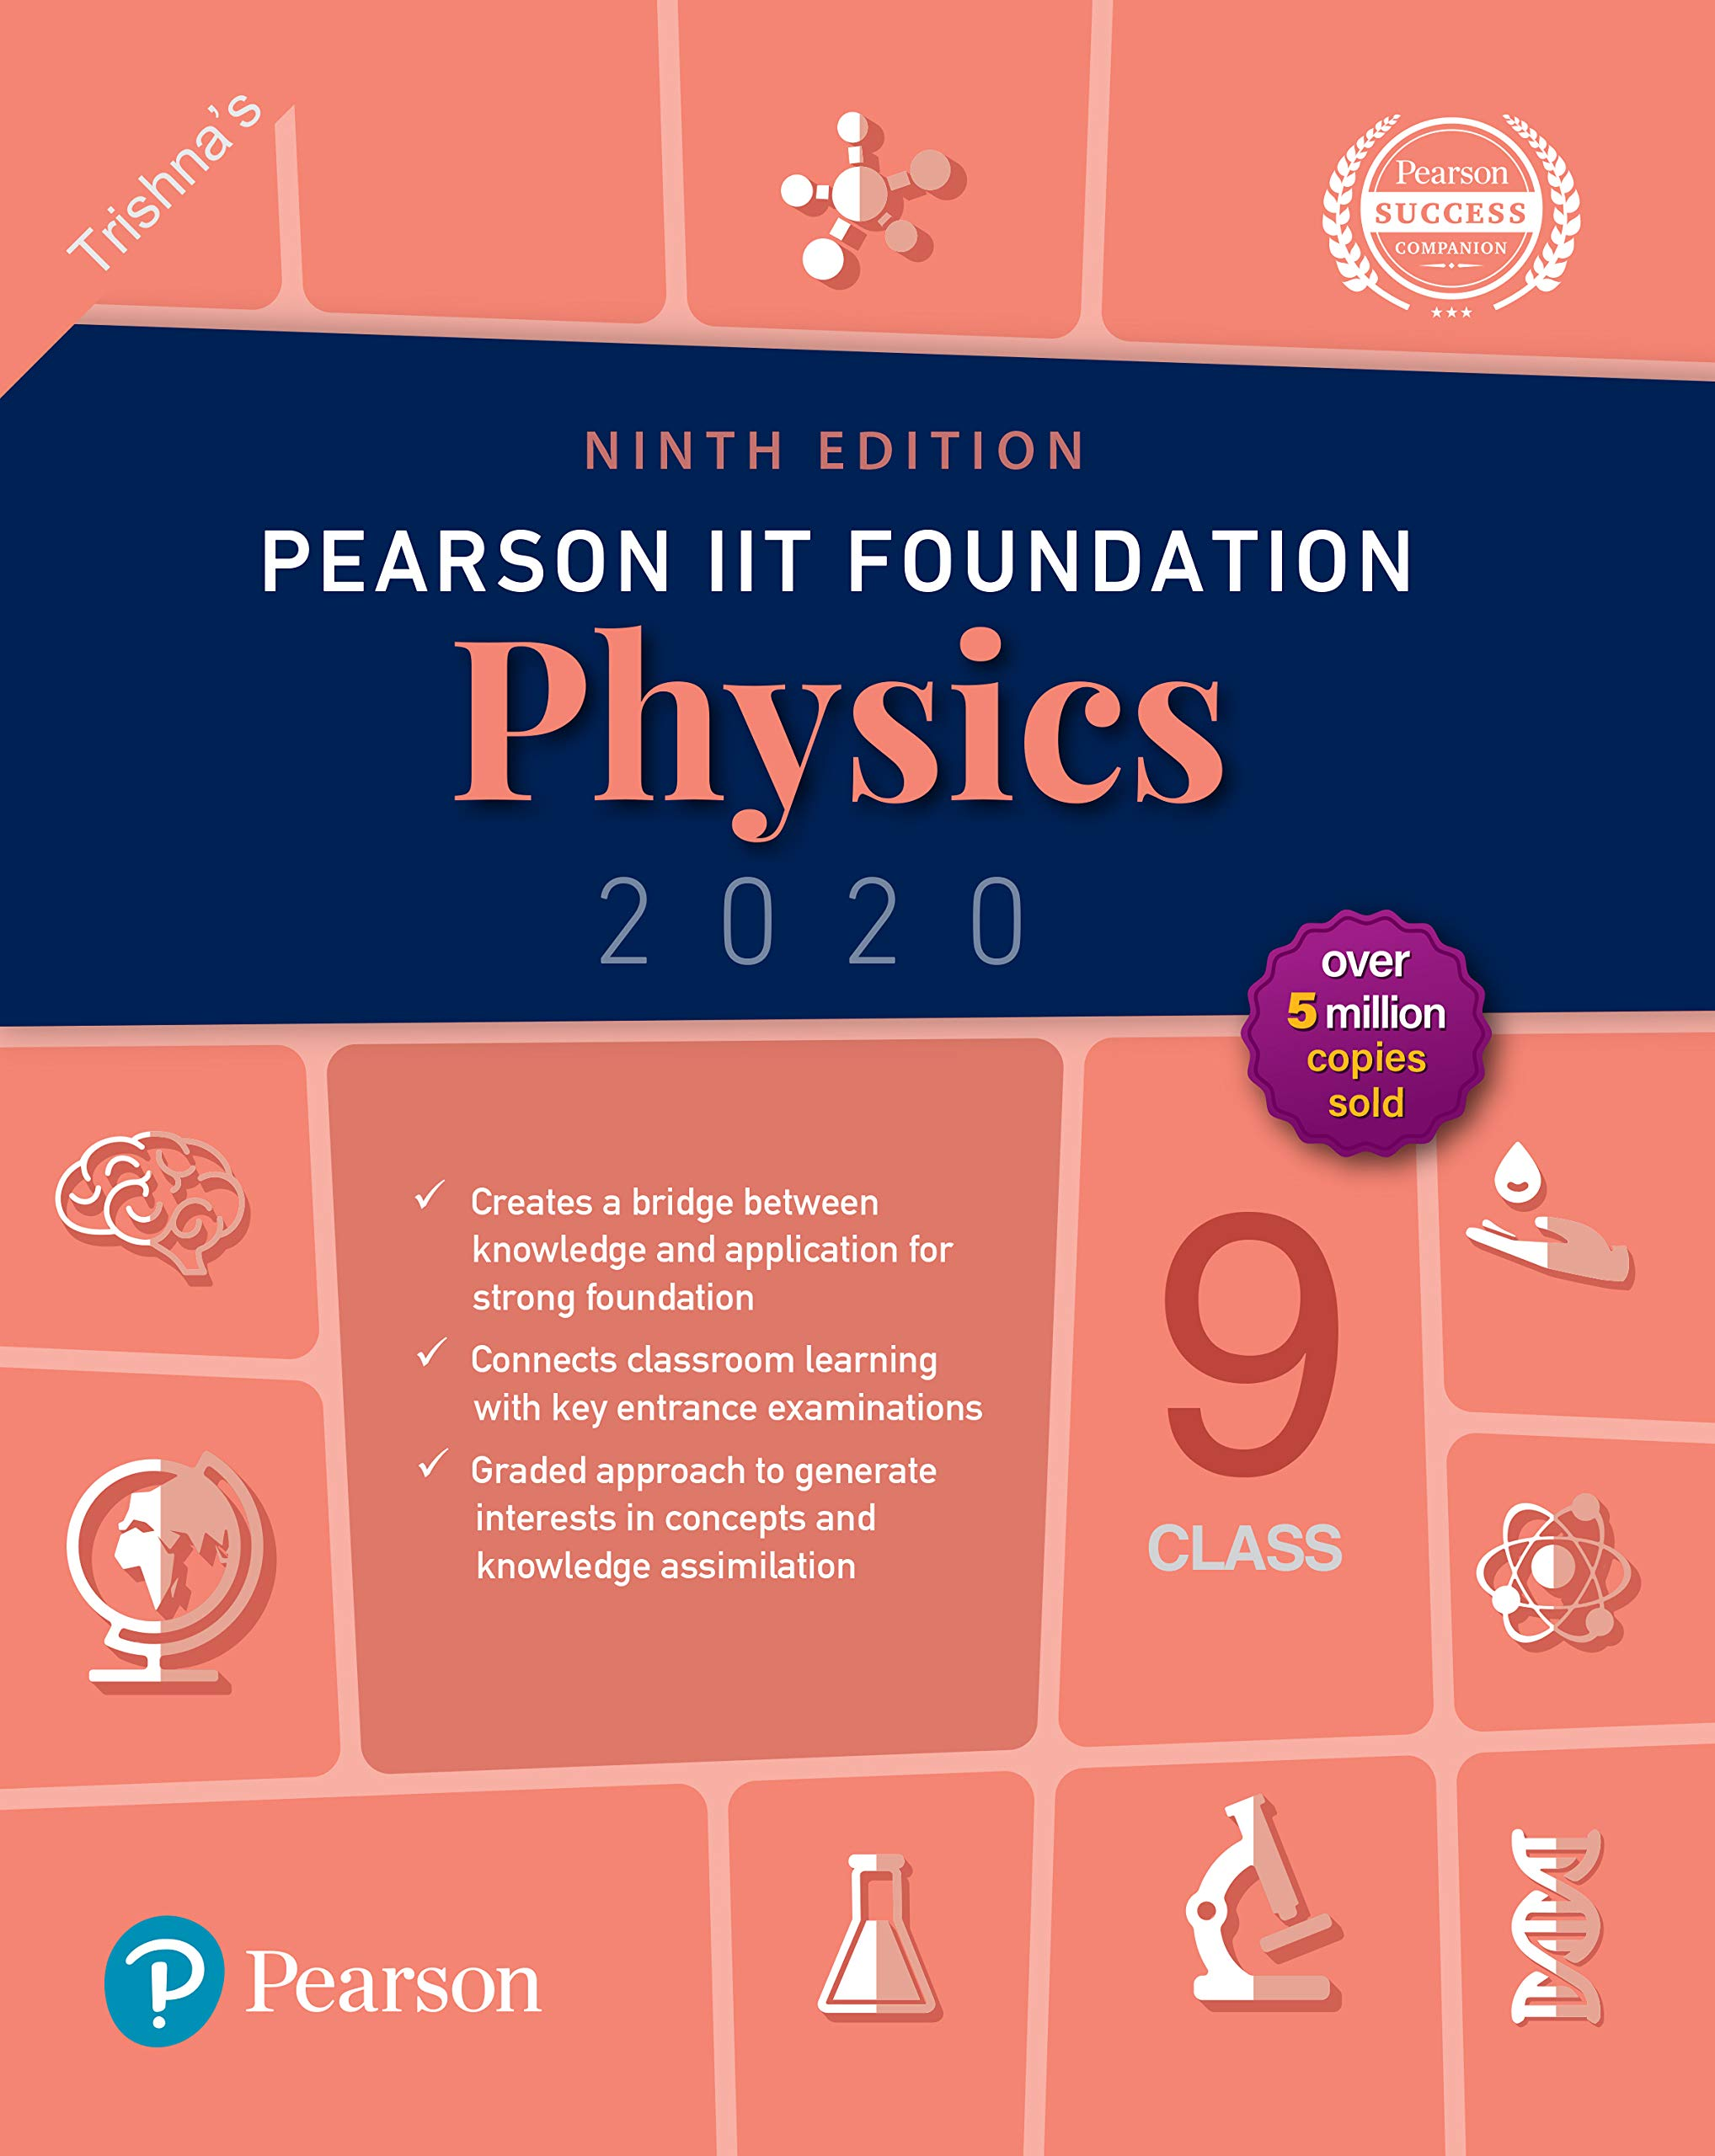 Pearson IIT Foundation Series Class 9 Physics 2020 Edition By Pearson